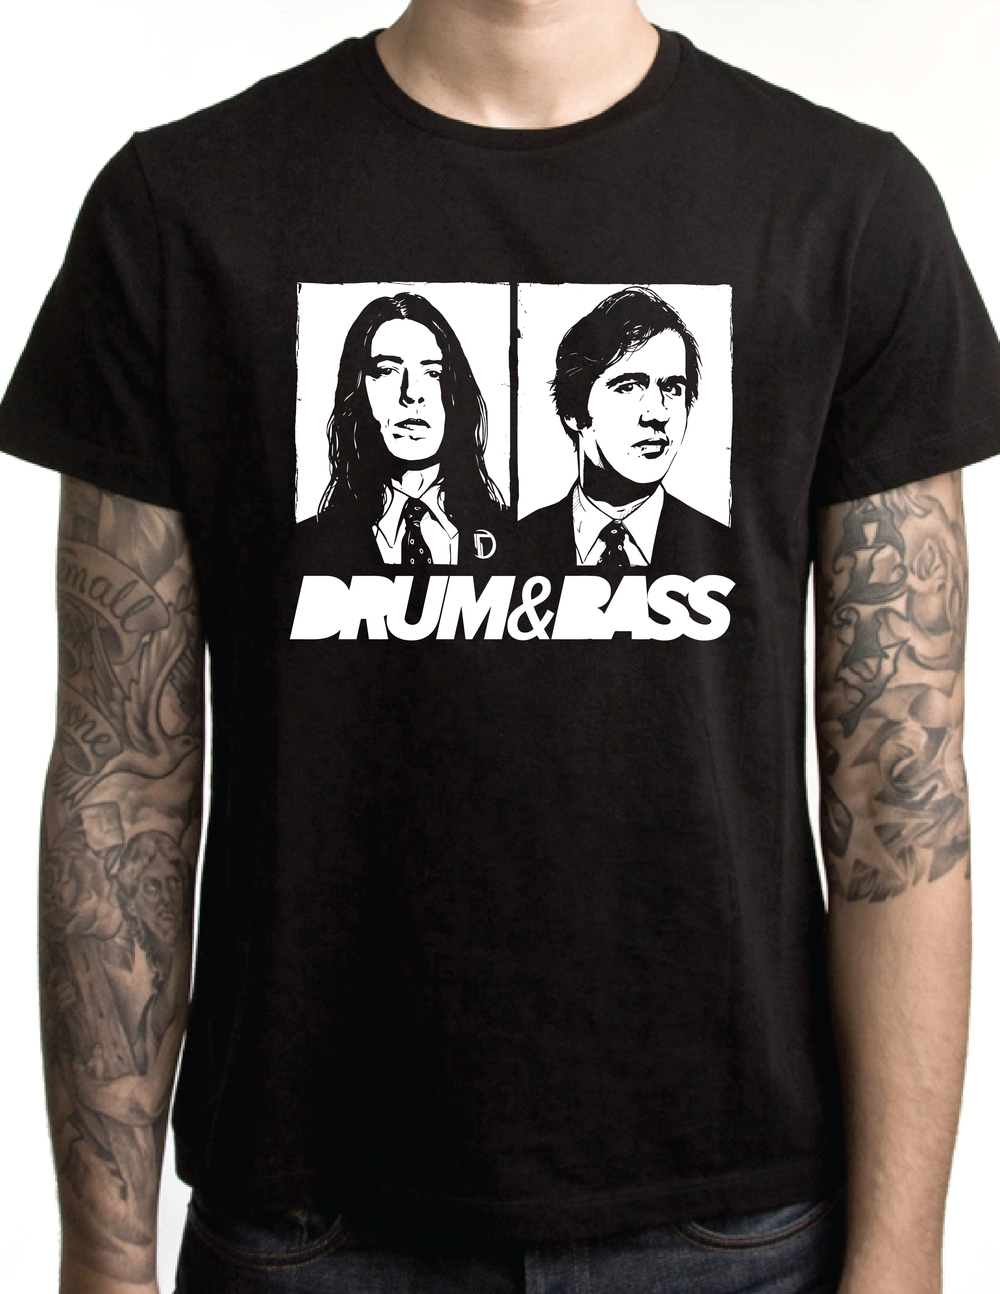 Zazzle t shirt design size - Dave And Krist Nirvana Drum Bass Graphic Print By Onset Dnb Overurhead Clothing